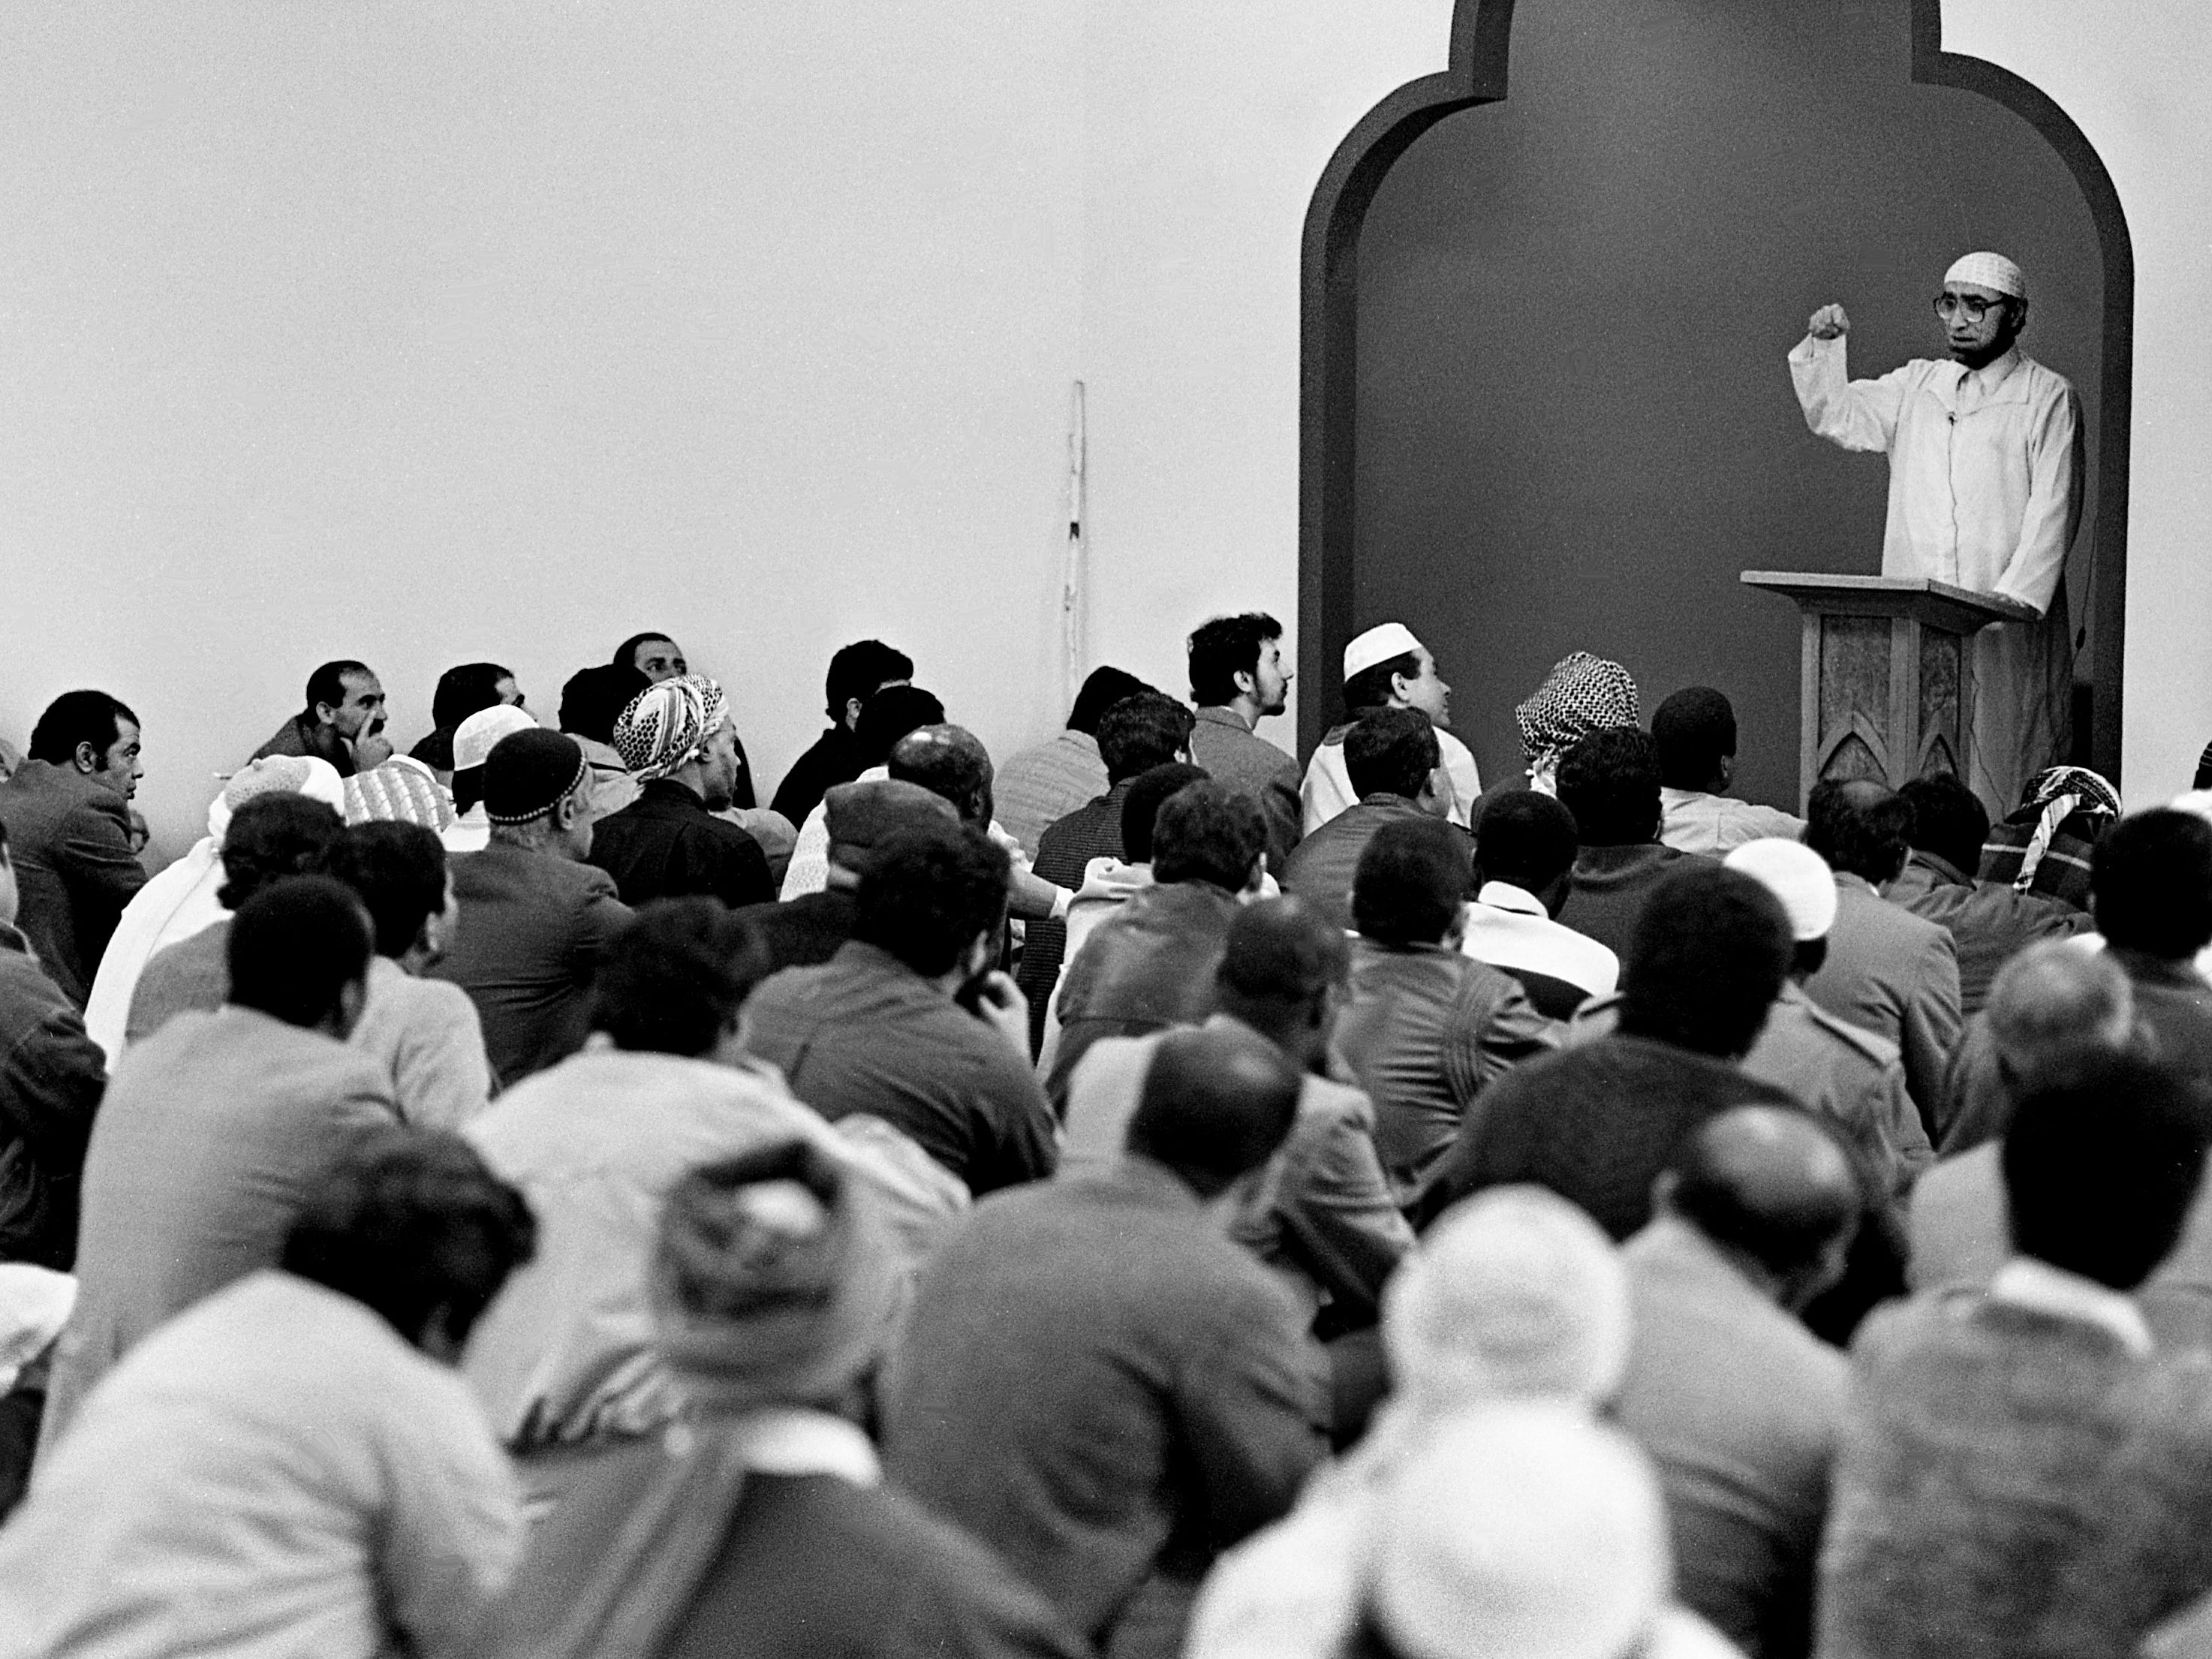 Nearly 300 local Muslims hear Islamic scholar Ahmad Sakr, a Muslim scholar from Chicago, during ceremonies to mark the opening of their new mosque, the Islamic Center, on 12th Ave. S., March 31, 1989.